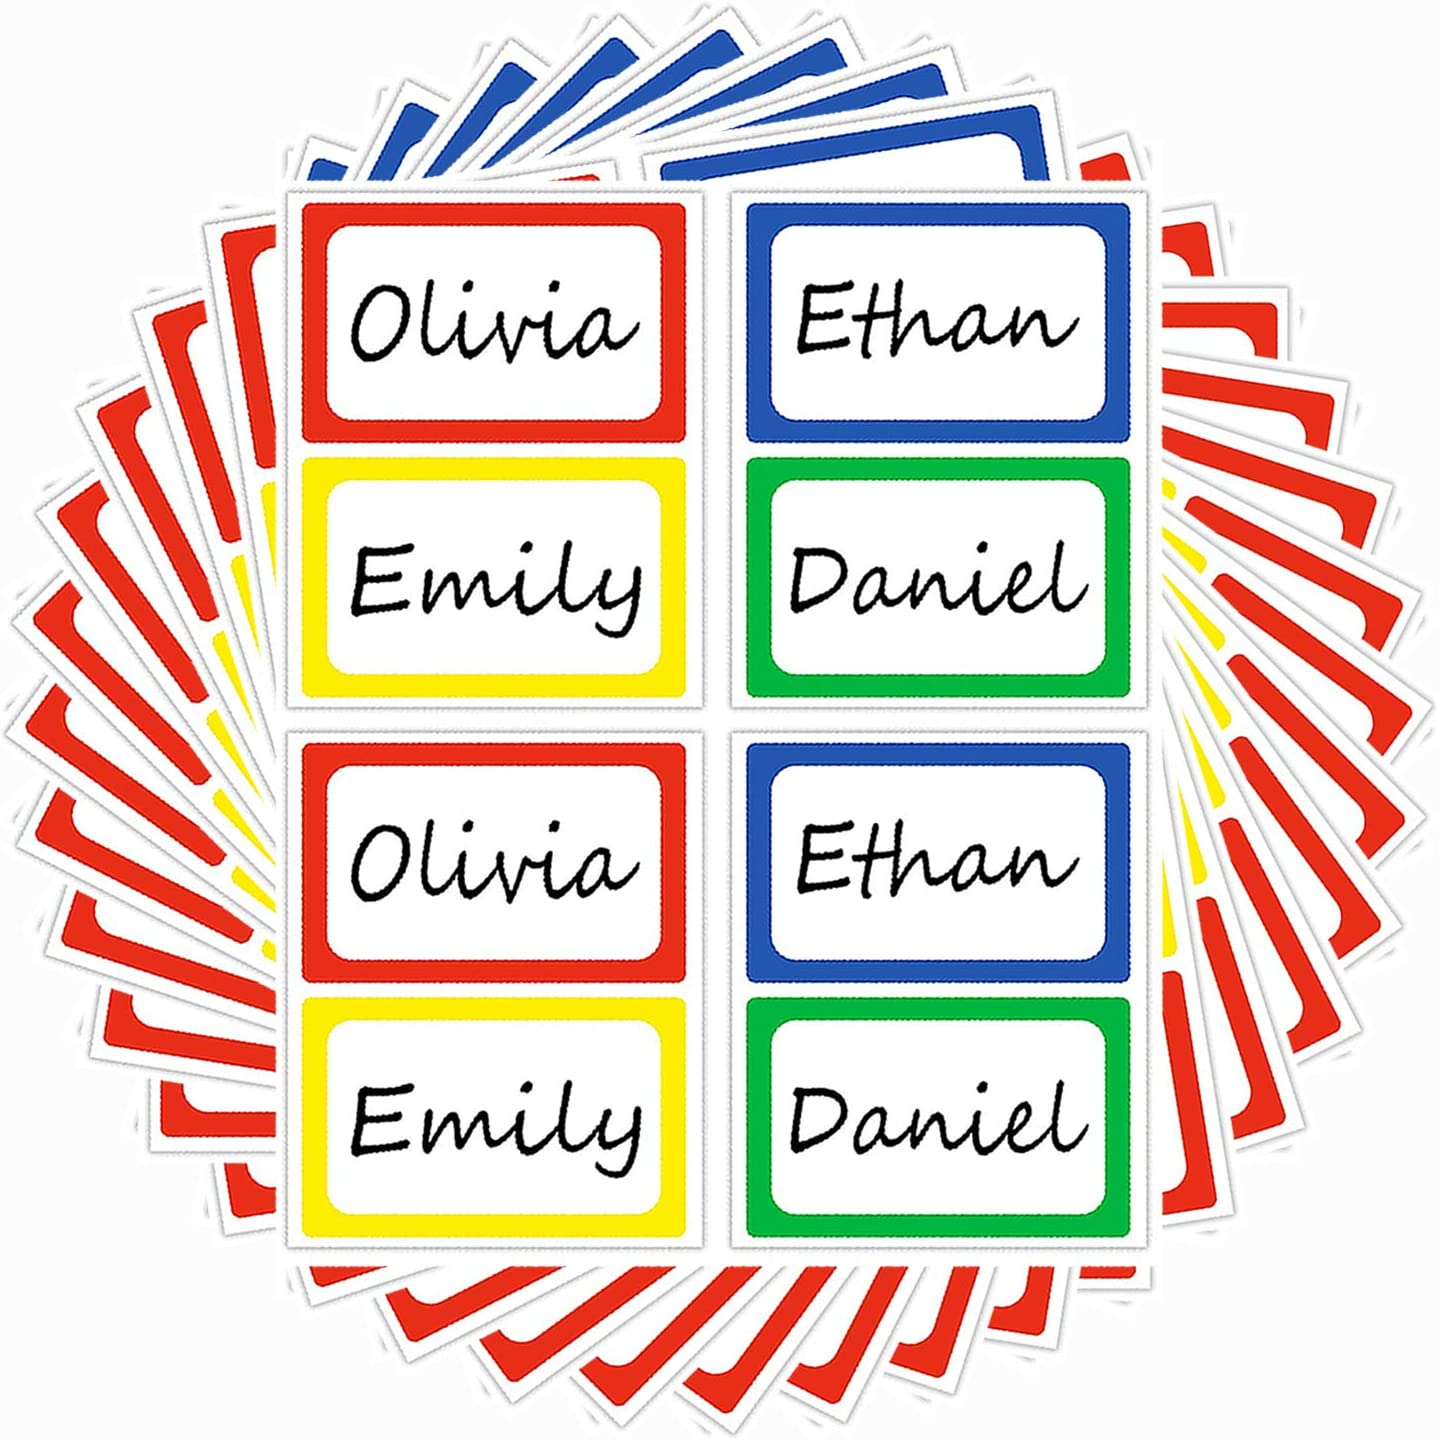 Colored Hello My Name is Stickers - Stick on Name Labels - Self-Adhesive Identification Name Label for Kids, School, office, Parties, Events - 2 X 3 Inch 200Pcs